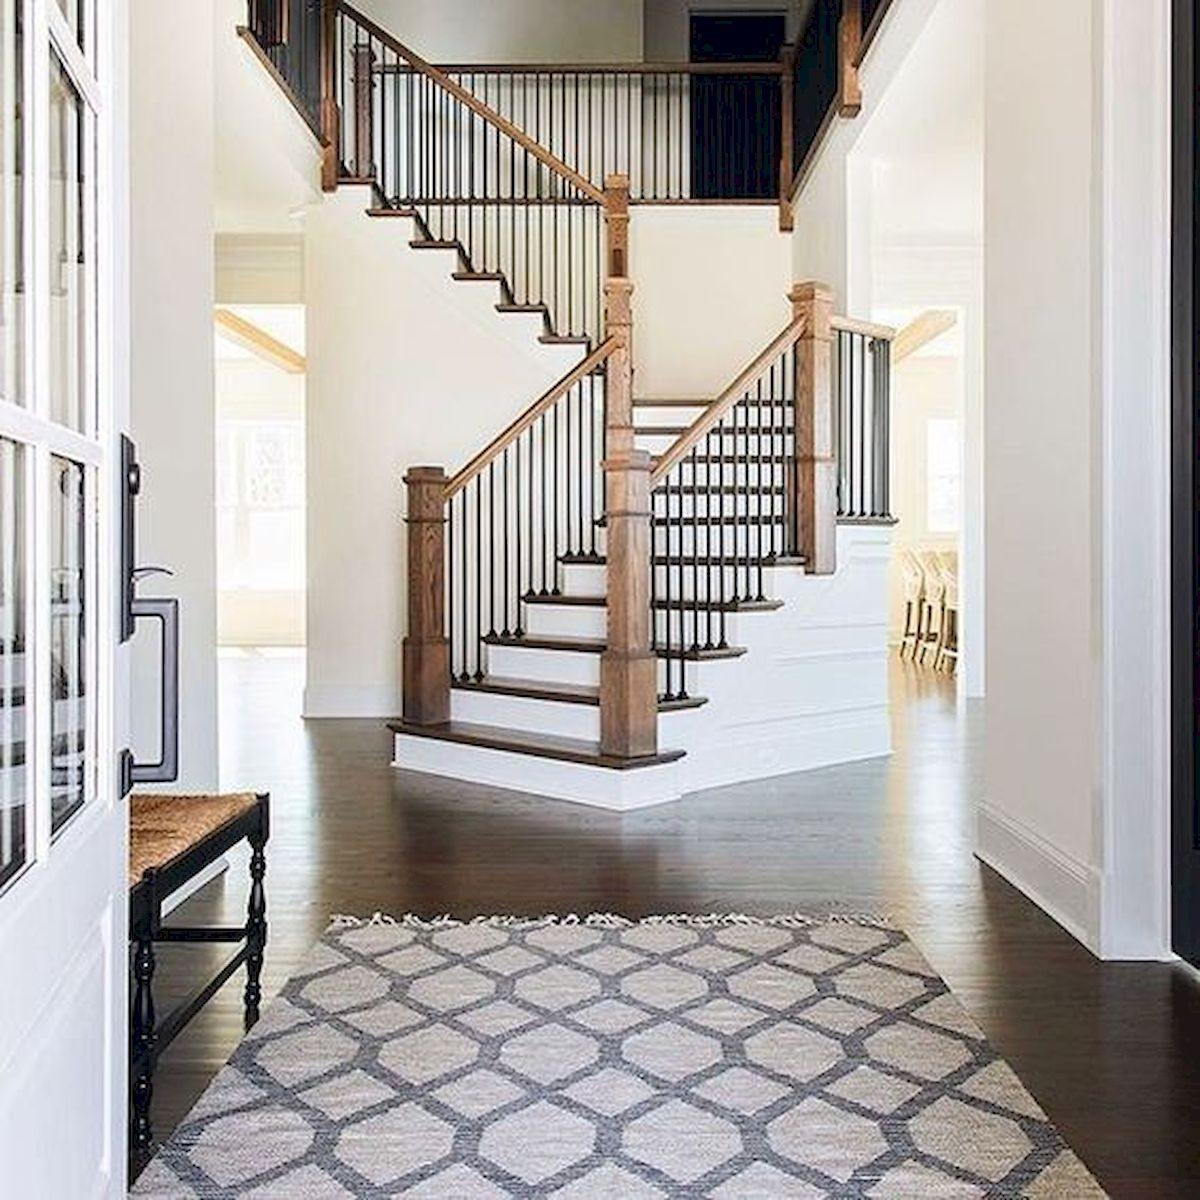 https://hardwoodyourhome.com/wp-content/uploads/2020/03/Stair-picture.jpg